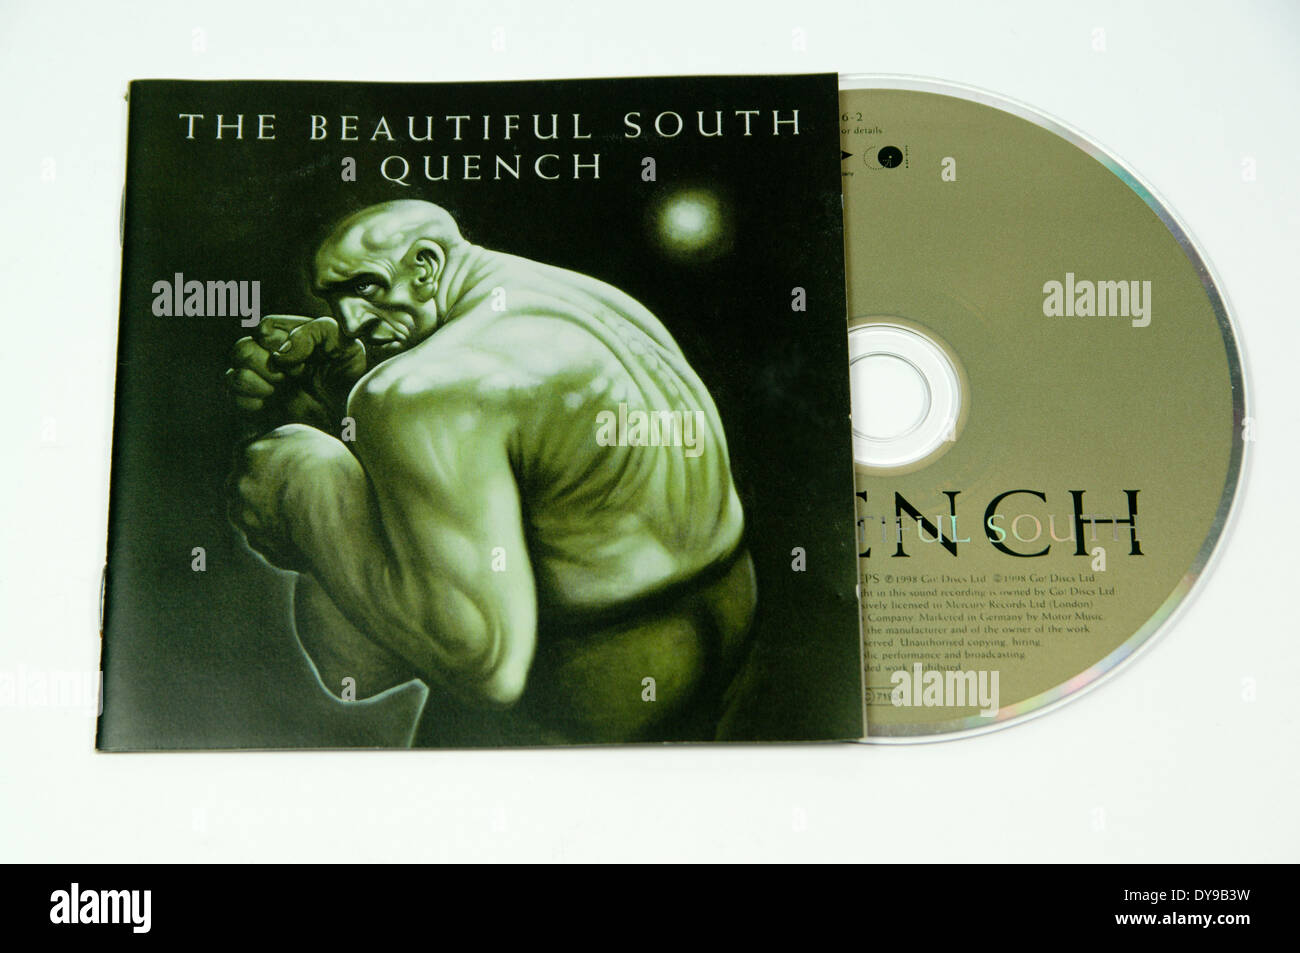 The Beautiful South 'Quench' Album - Stock Image